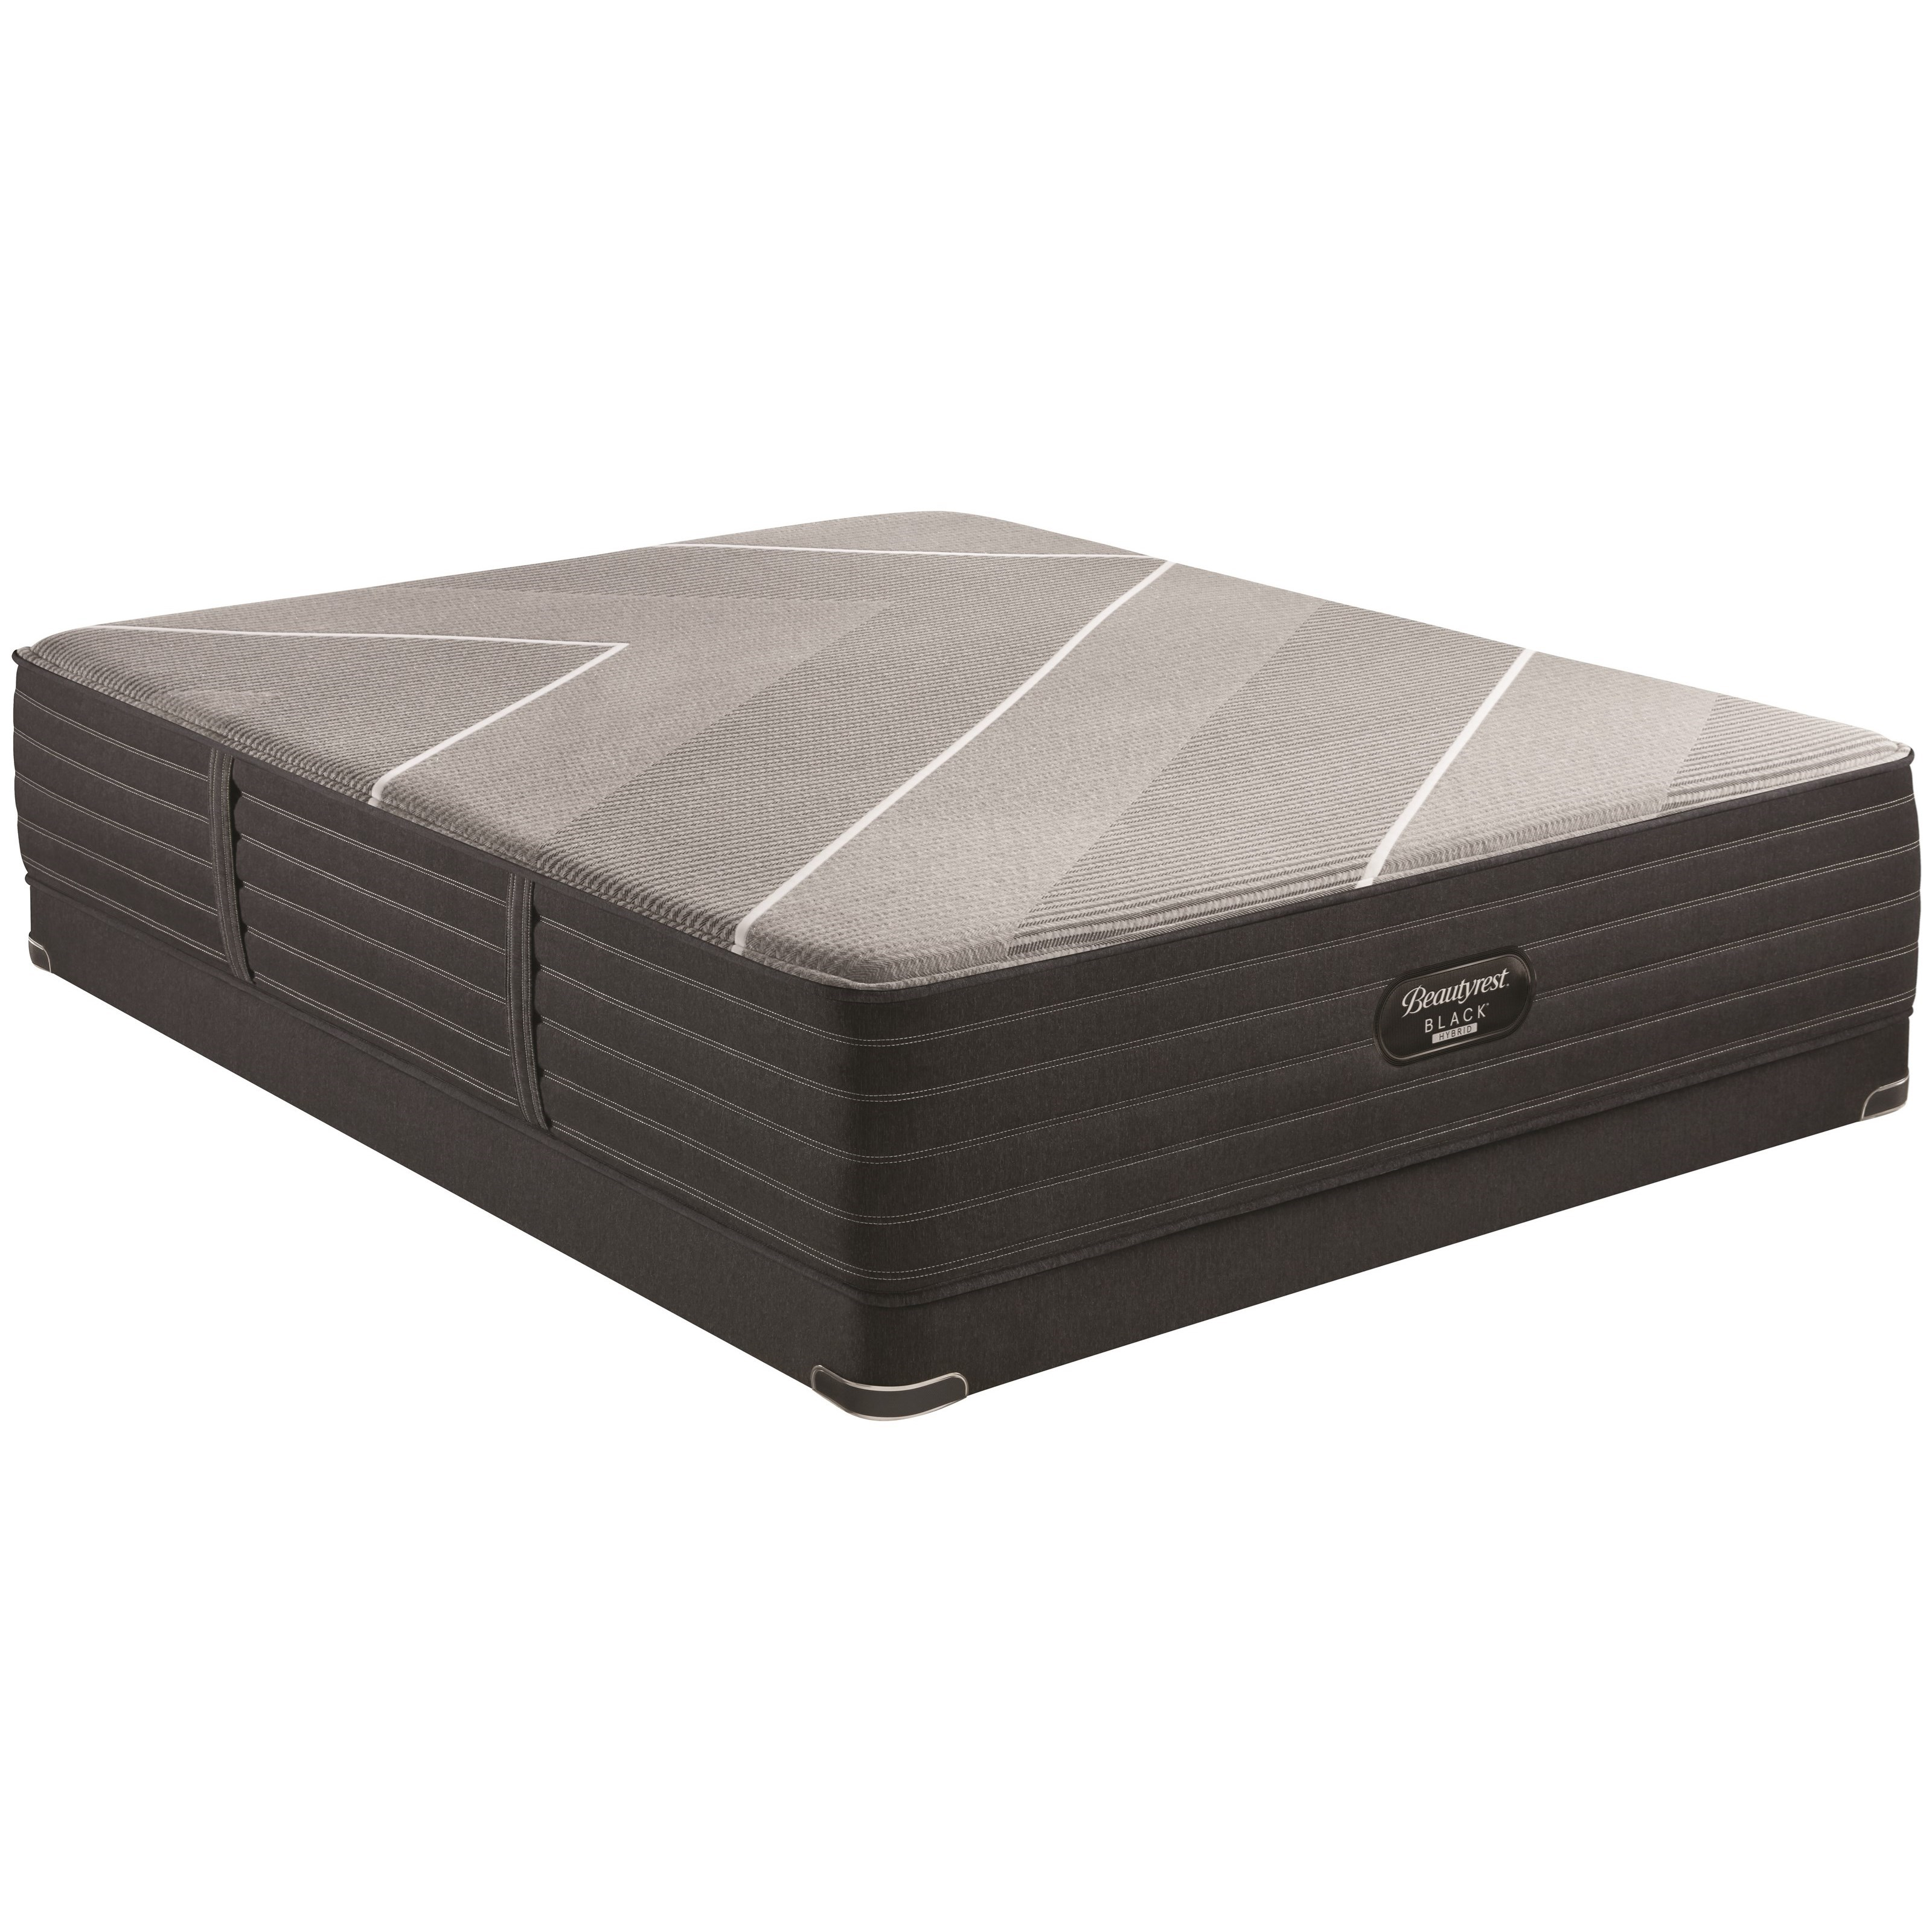 "X-Class Hybrid Firm Queen 14 1/2"" Firm Hybrid LP Set by Beautyrest at Walker's Mattress"